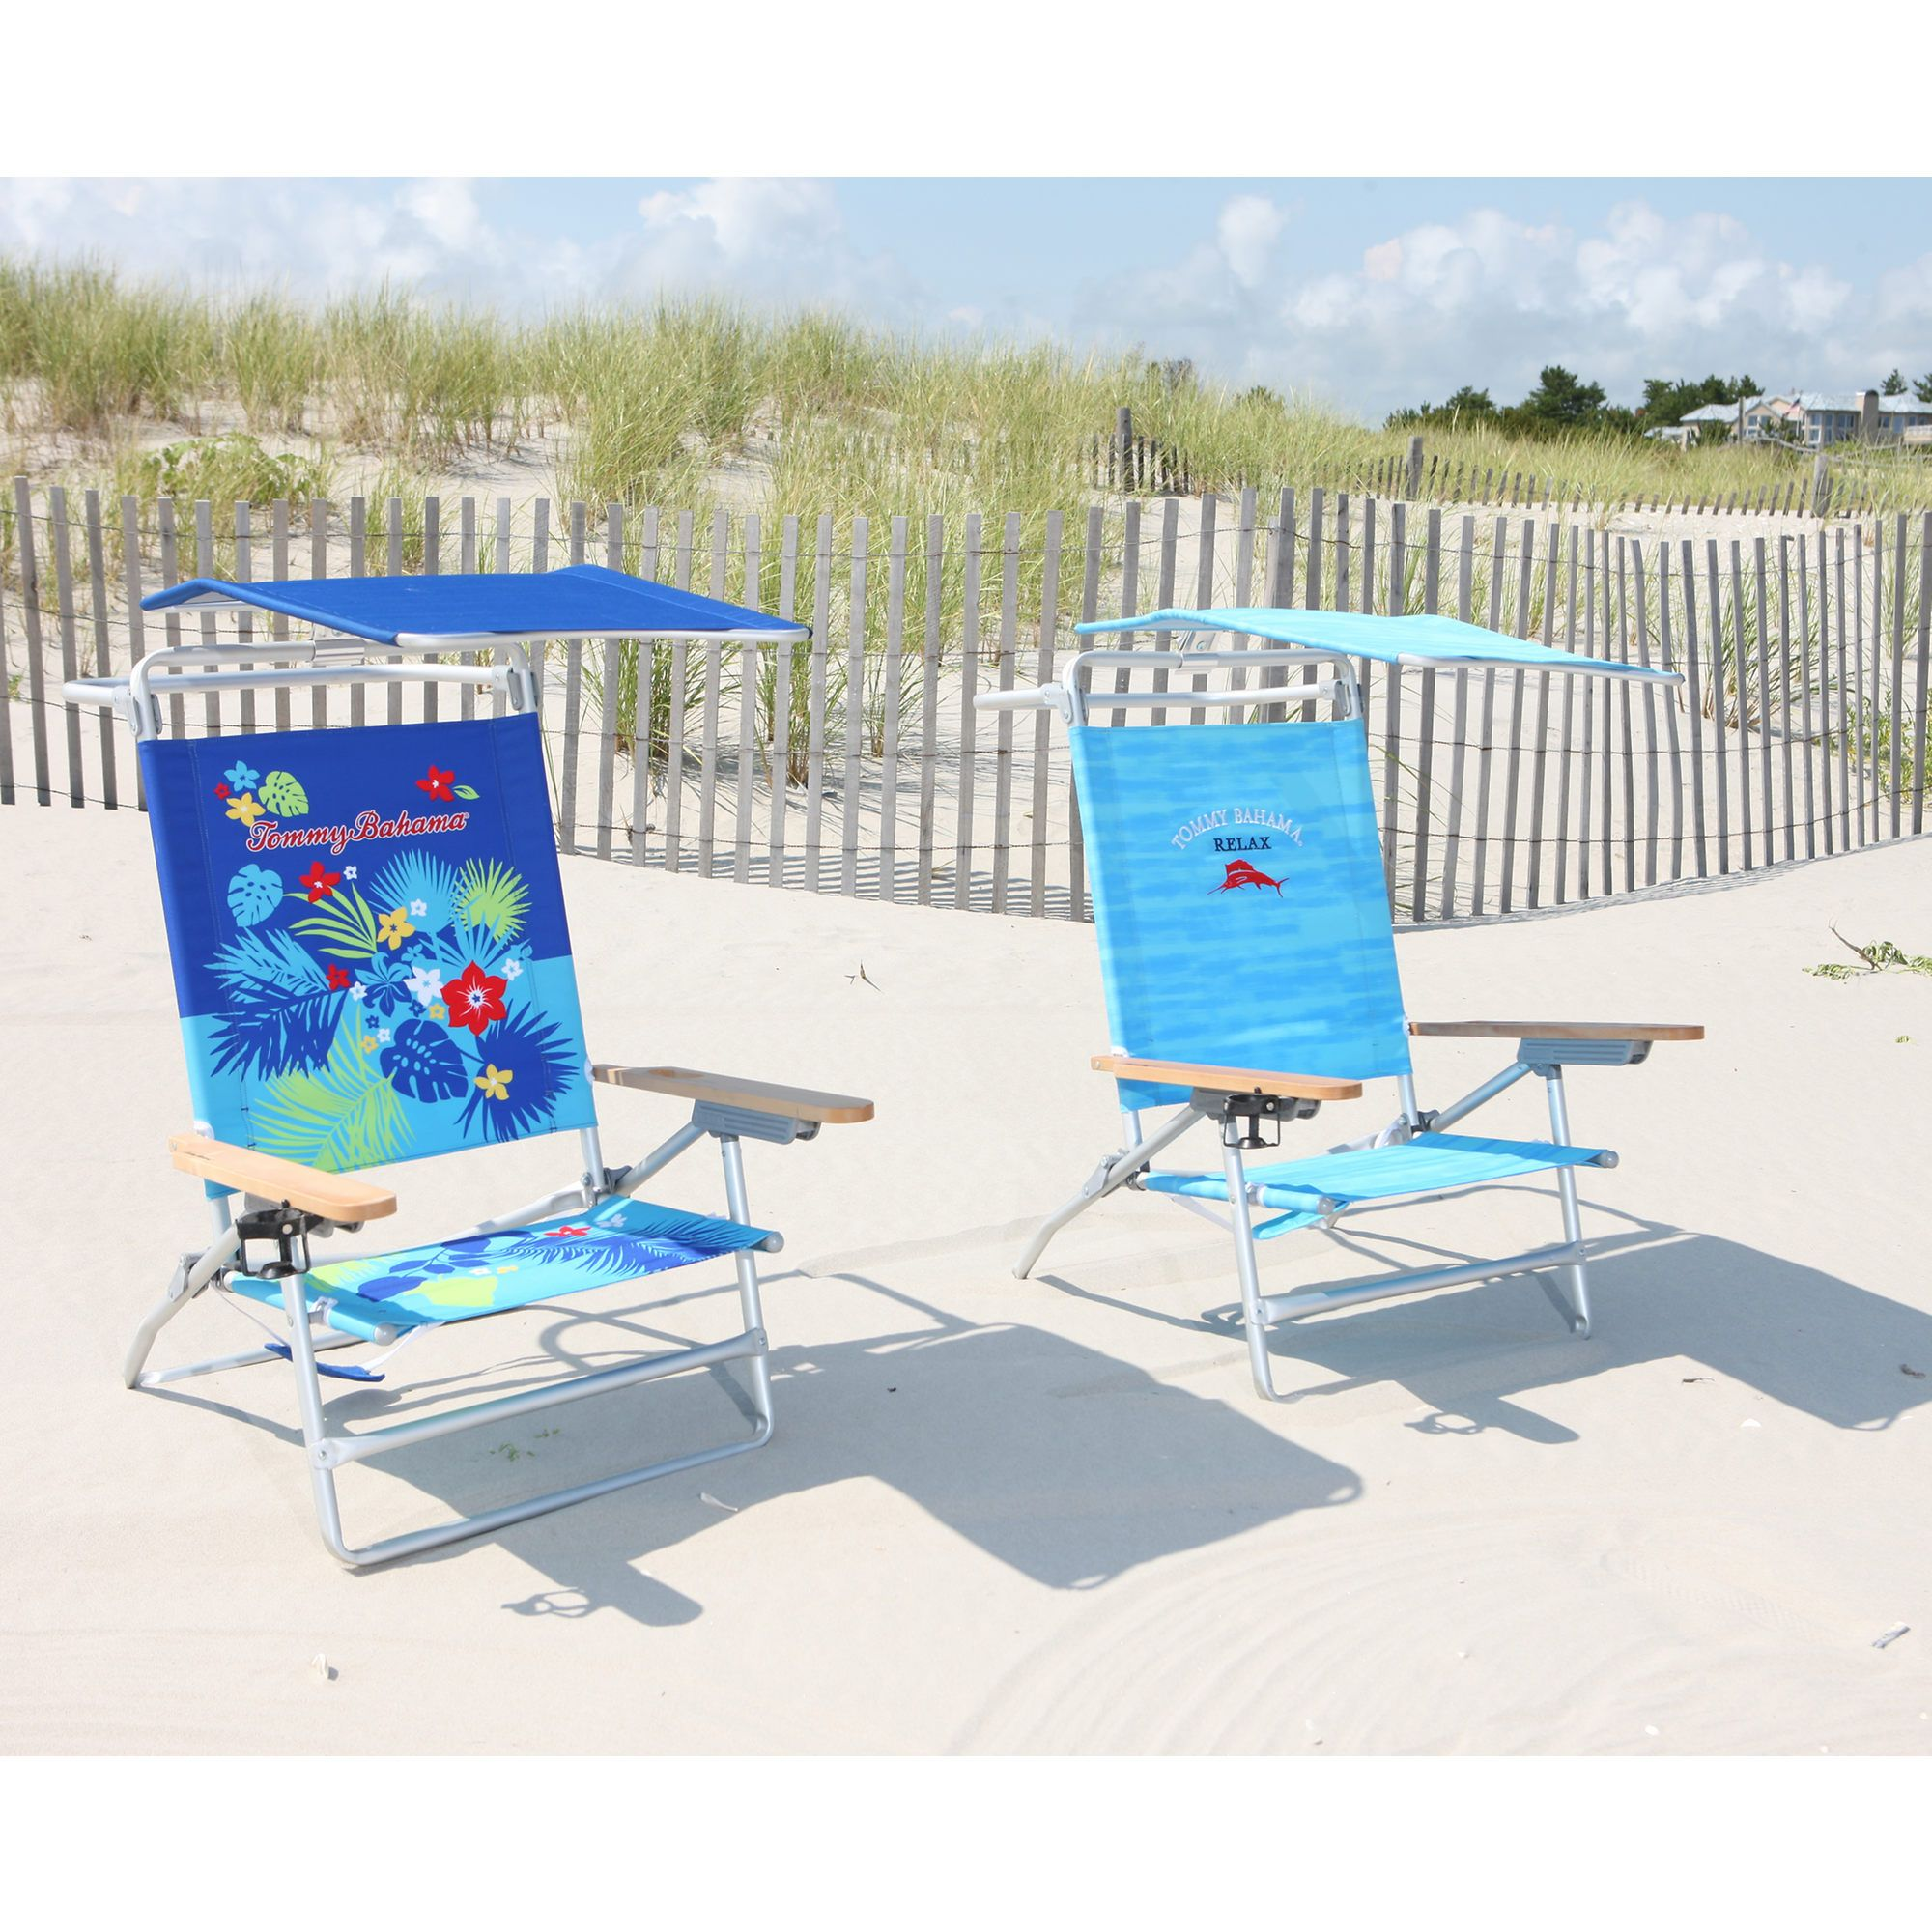 5970de9d2b Tommy Bahama Deluxe Oversized Beach Chair with Canopy - Assorted ...